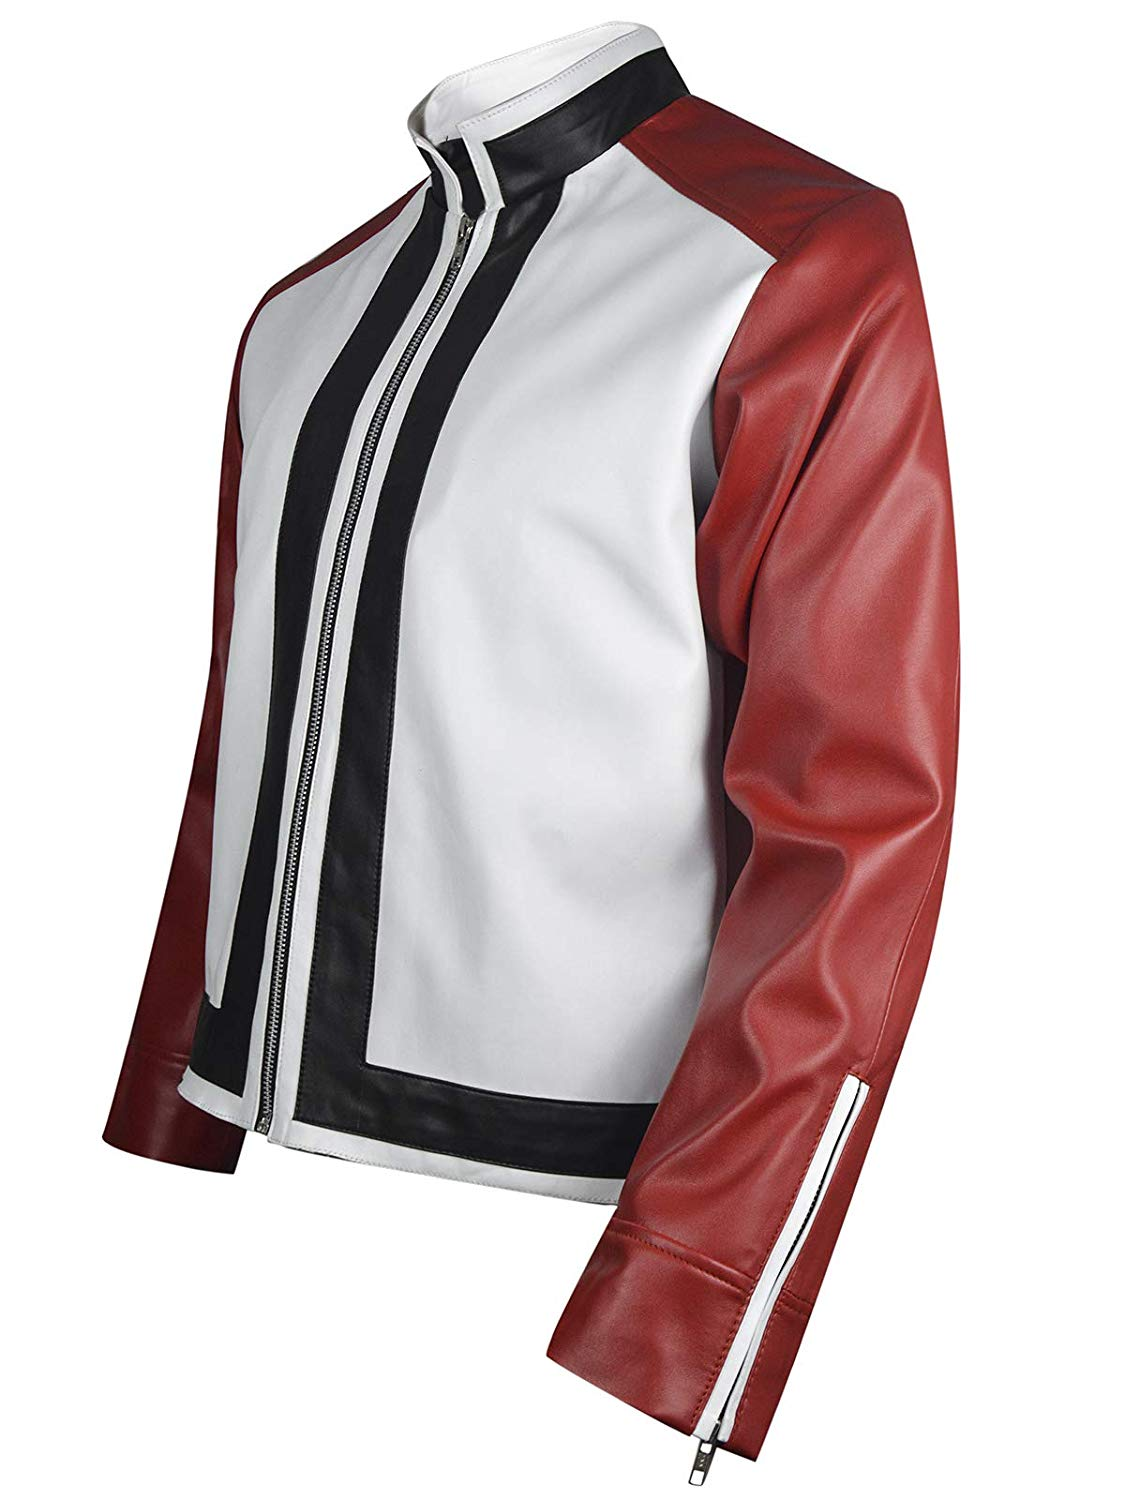 King Of Fighters 14 Rock Howard Red White Leather Jacket Right Jackets Terry bogard is the brother of andy bogard. king of fighters 14 rock howard red white leather jacket right jackets